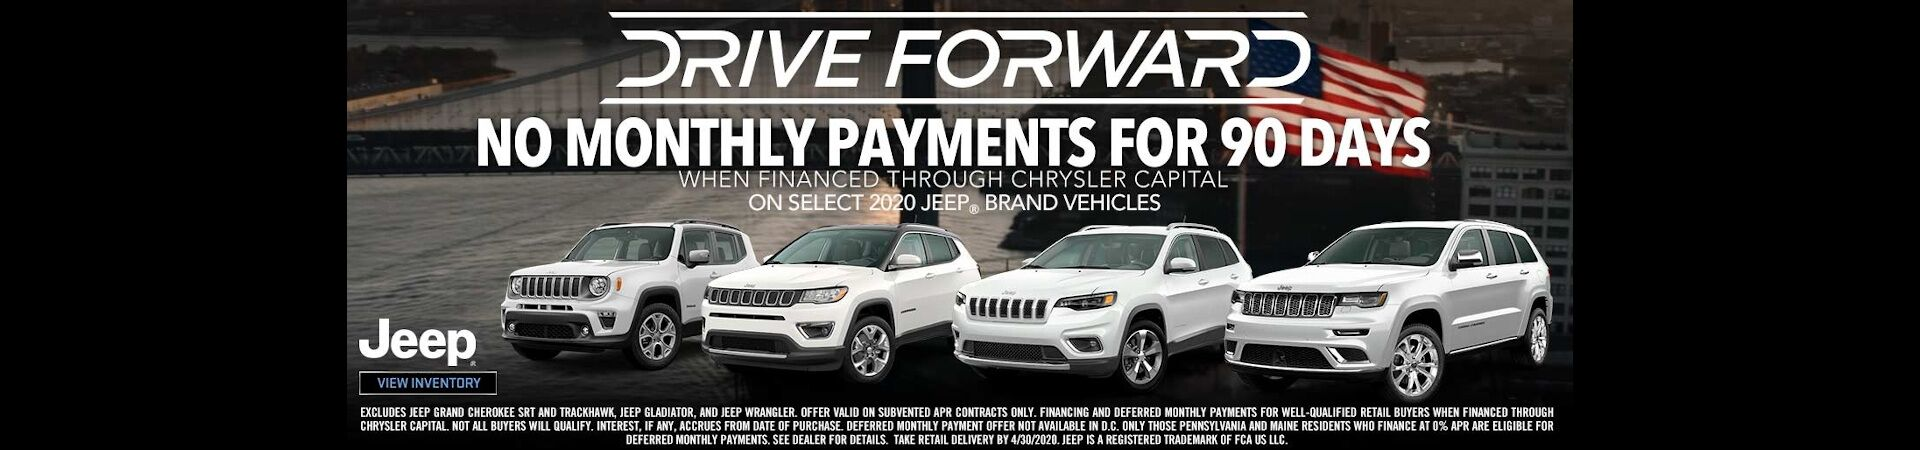 Drive Forward - NMP for 90 - Jeep